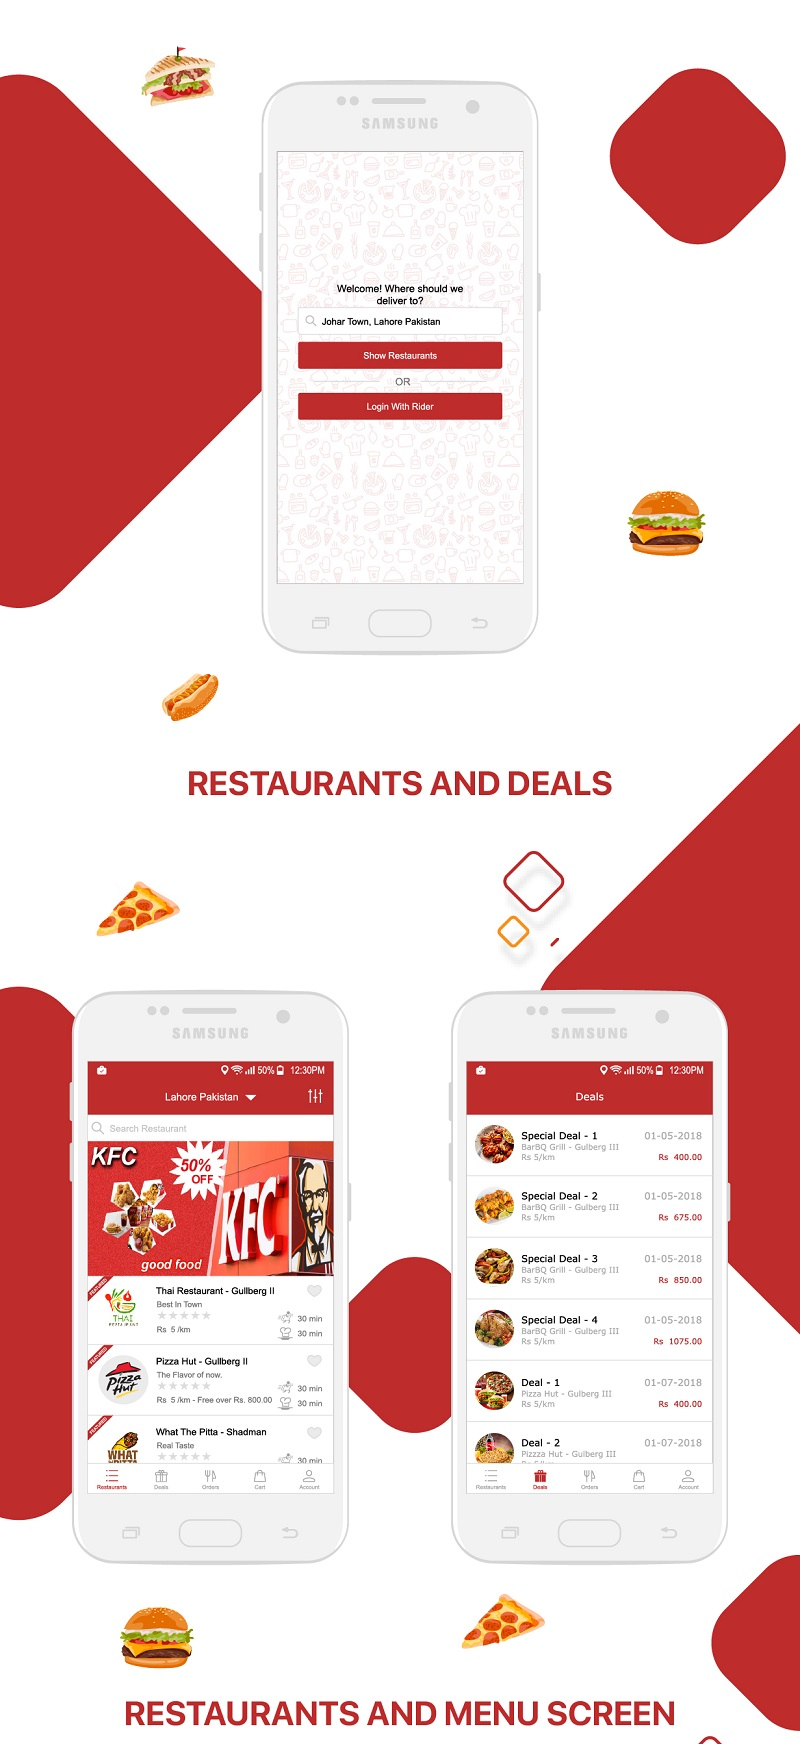 Native Restaurant Food Delivery & Ordering System With Delivery Boy - Android v2.0.6 - 11